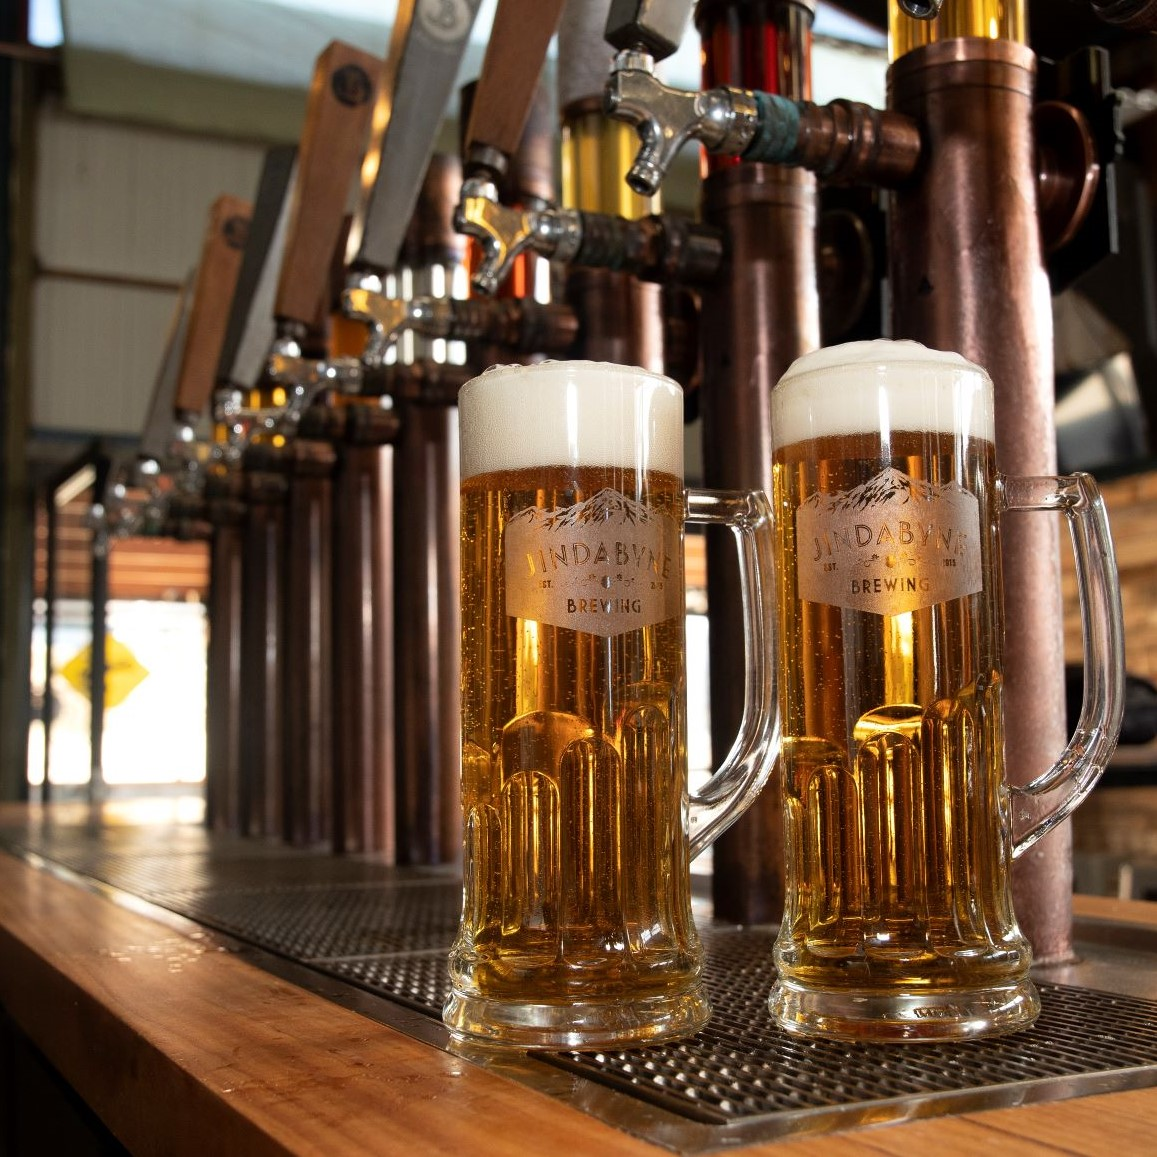 Craft beer on tap at the Jindabyne Brewing Company